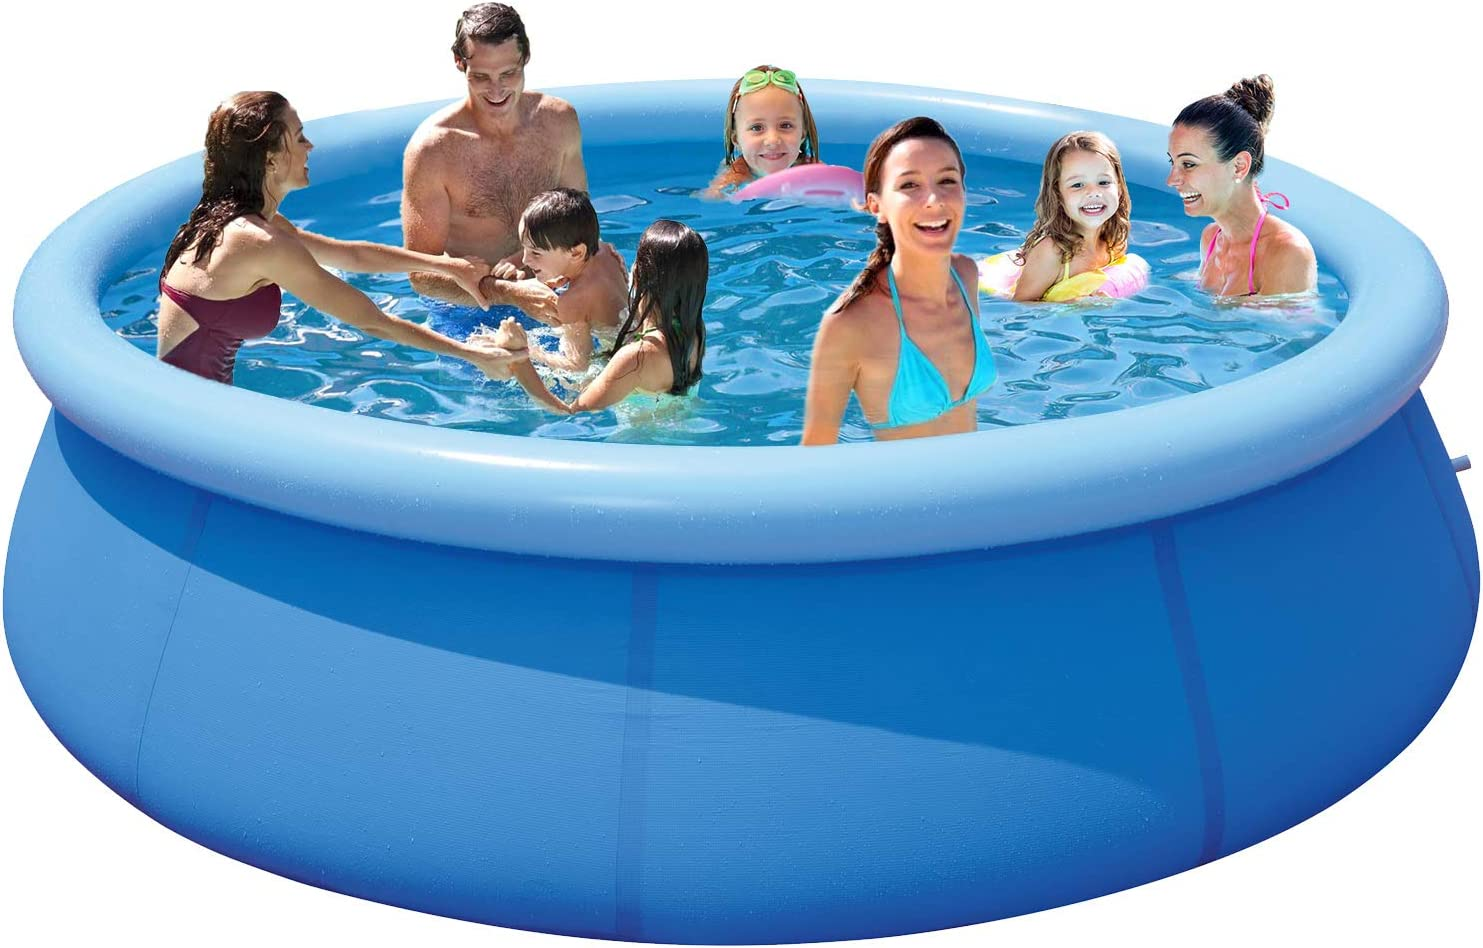 Pugmiia Above Ground Swimming Pools For Adults 12ft X 30in Outdoor Pool Below Up Pool For Kids Pools For Backyard Inflatable Swimming Pool Adult Big Pool For Family Summer